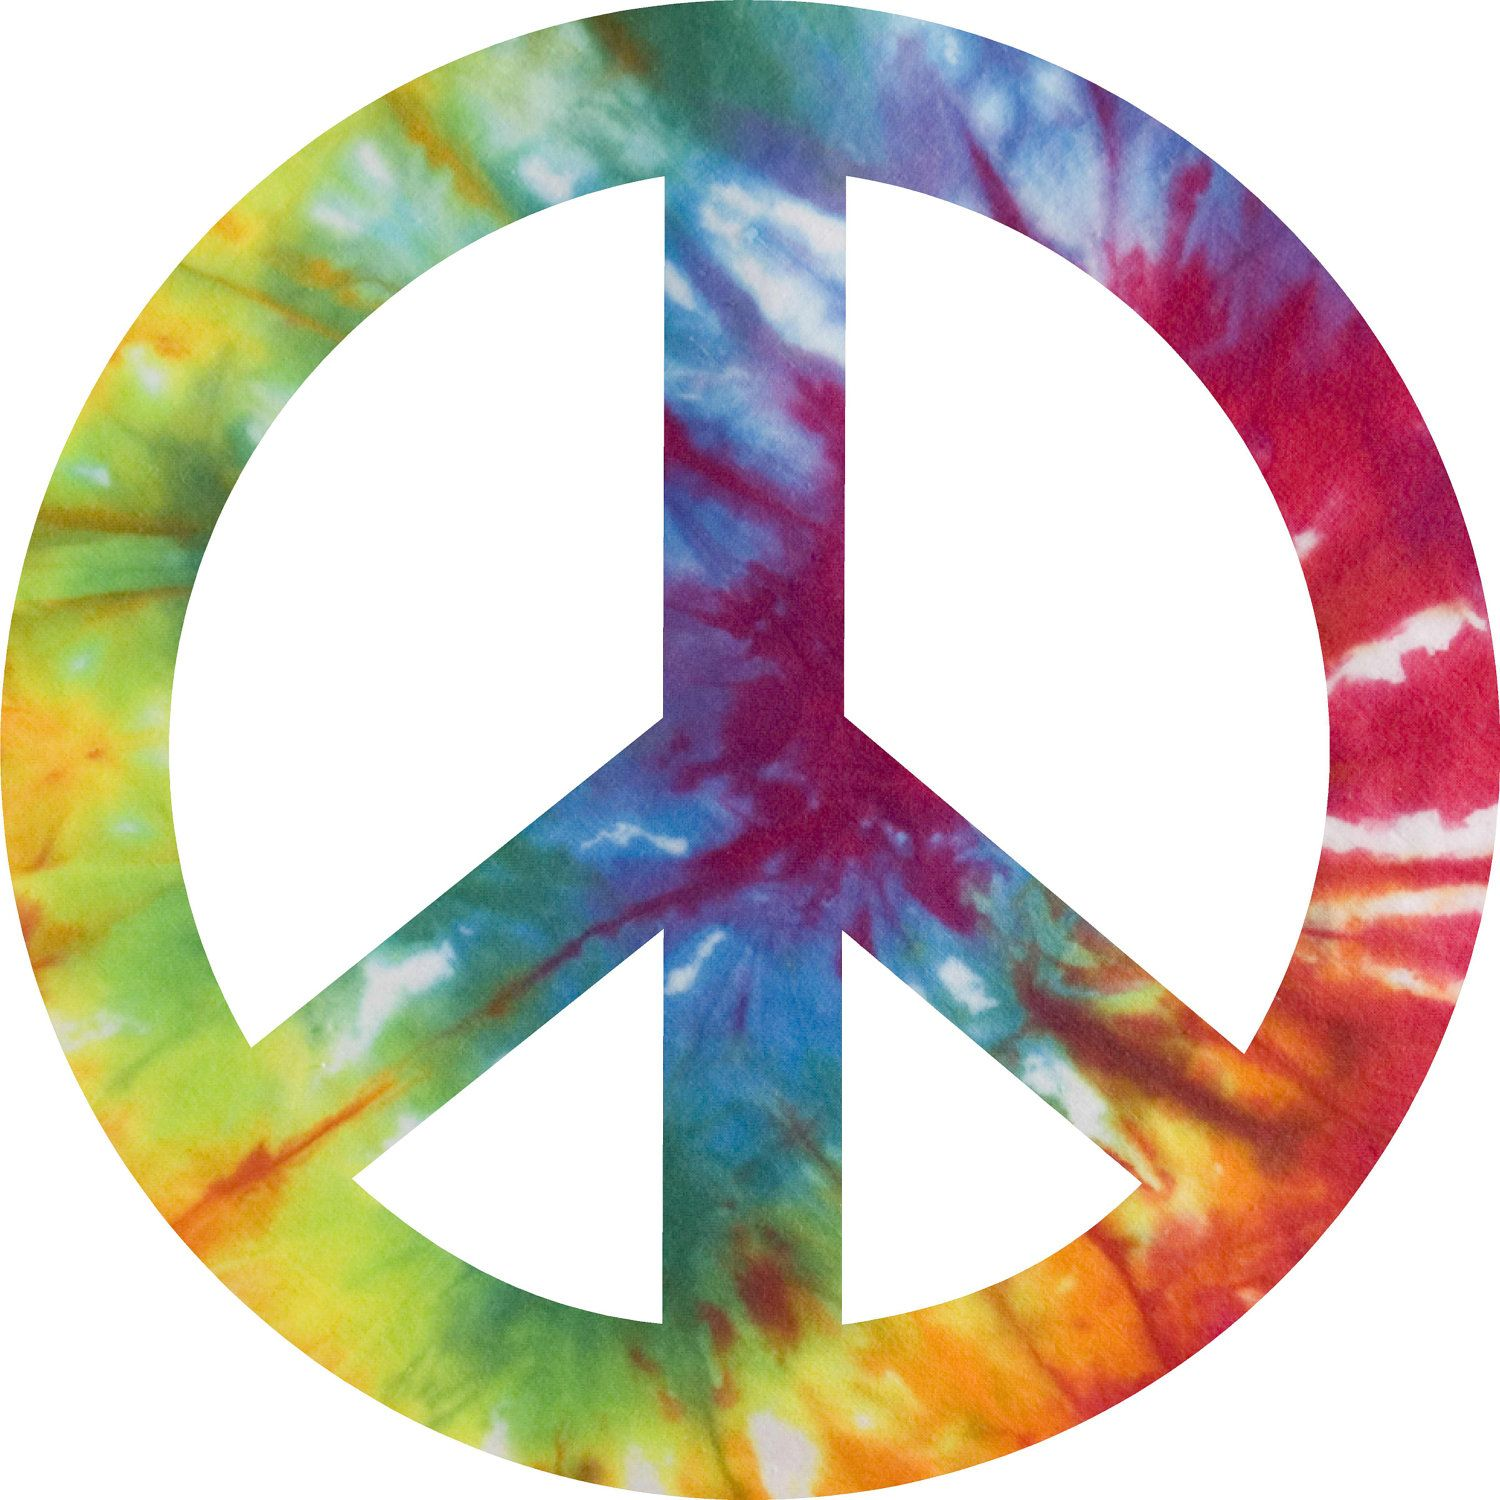 peace signs | Tie Dye Peace Sign Decal Sticker 10 inches ...